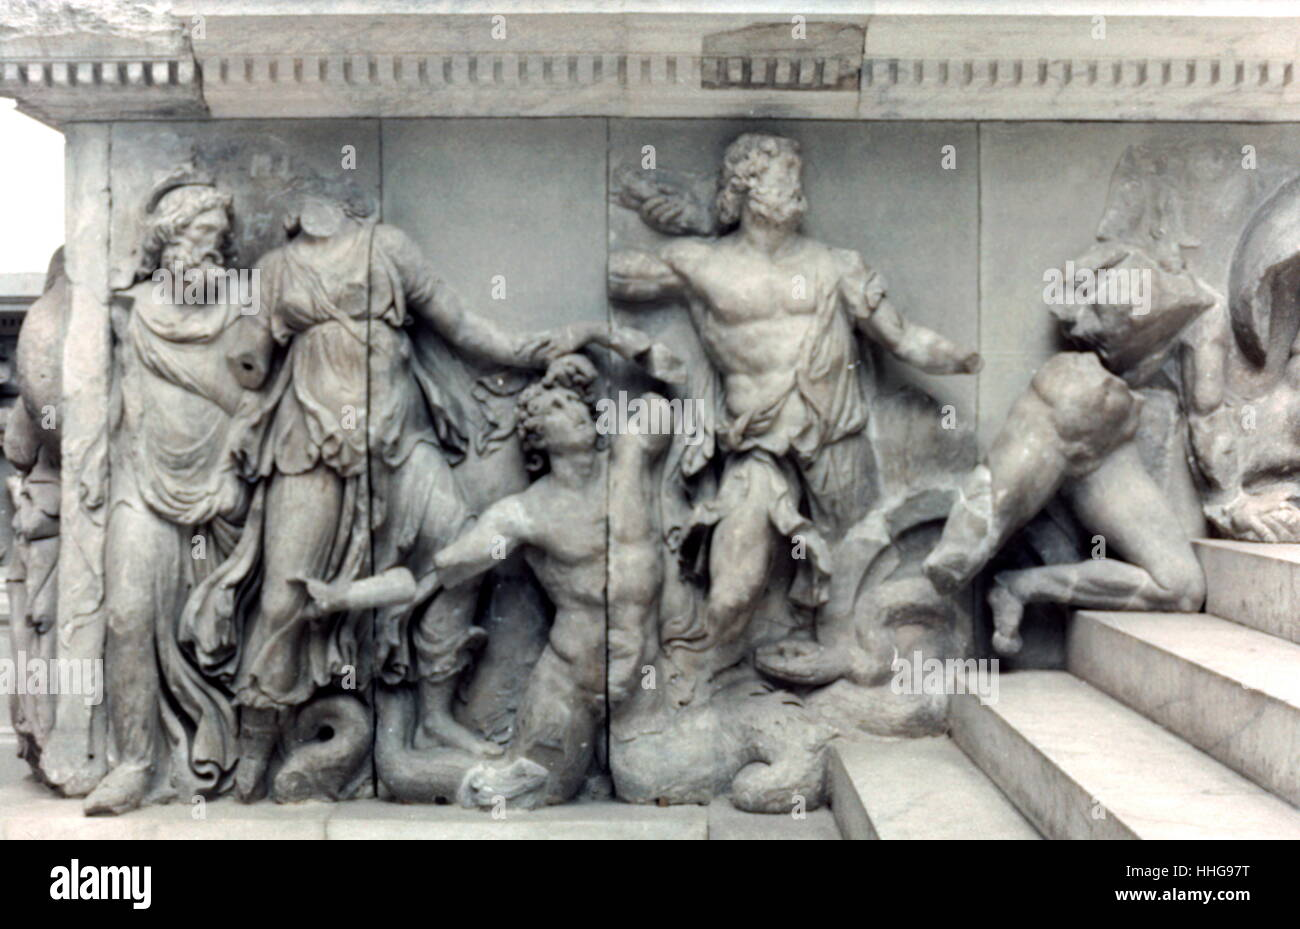 sea gods in Battle. Relief from the Pergamon Altar, reconstructed in the Pergamon Museum in Berlin. The Pergamon - Stock Image